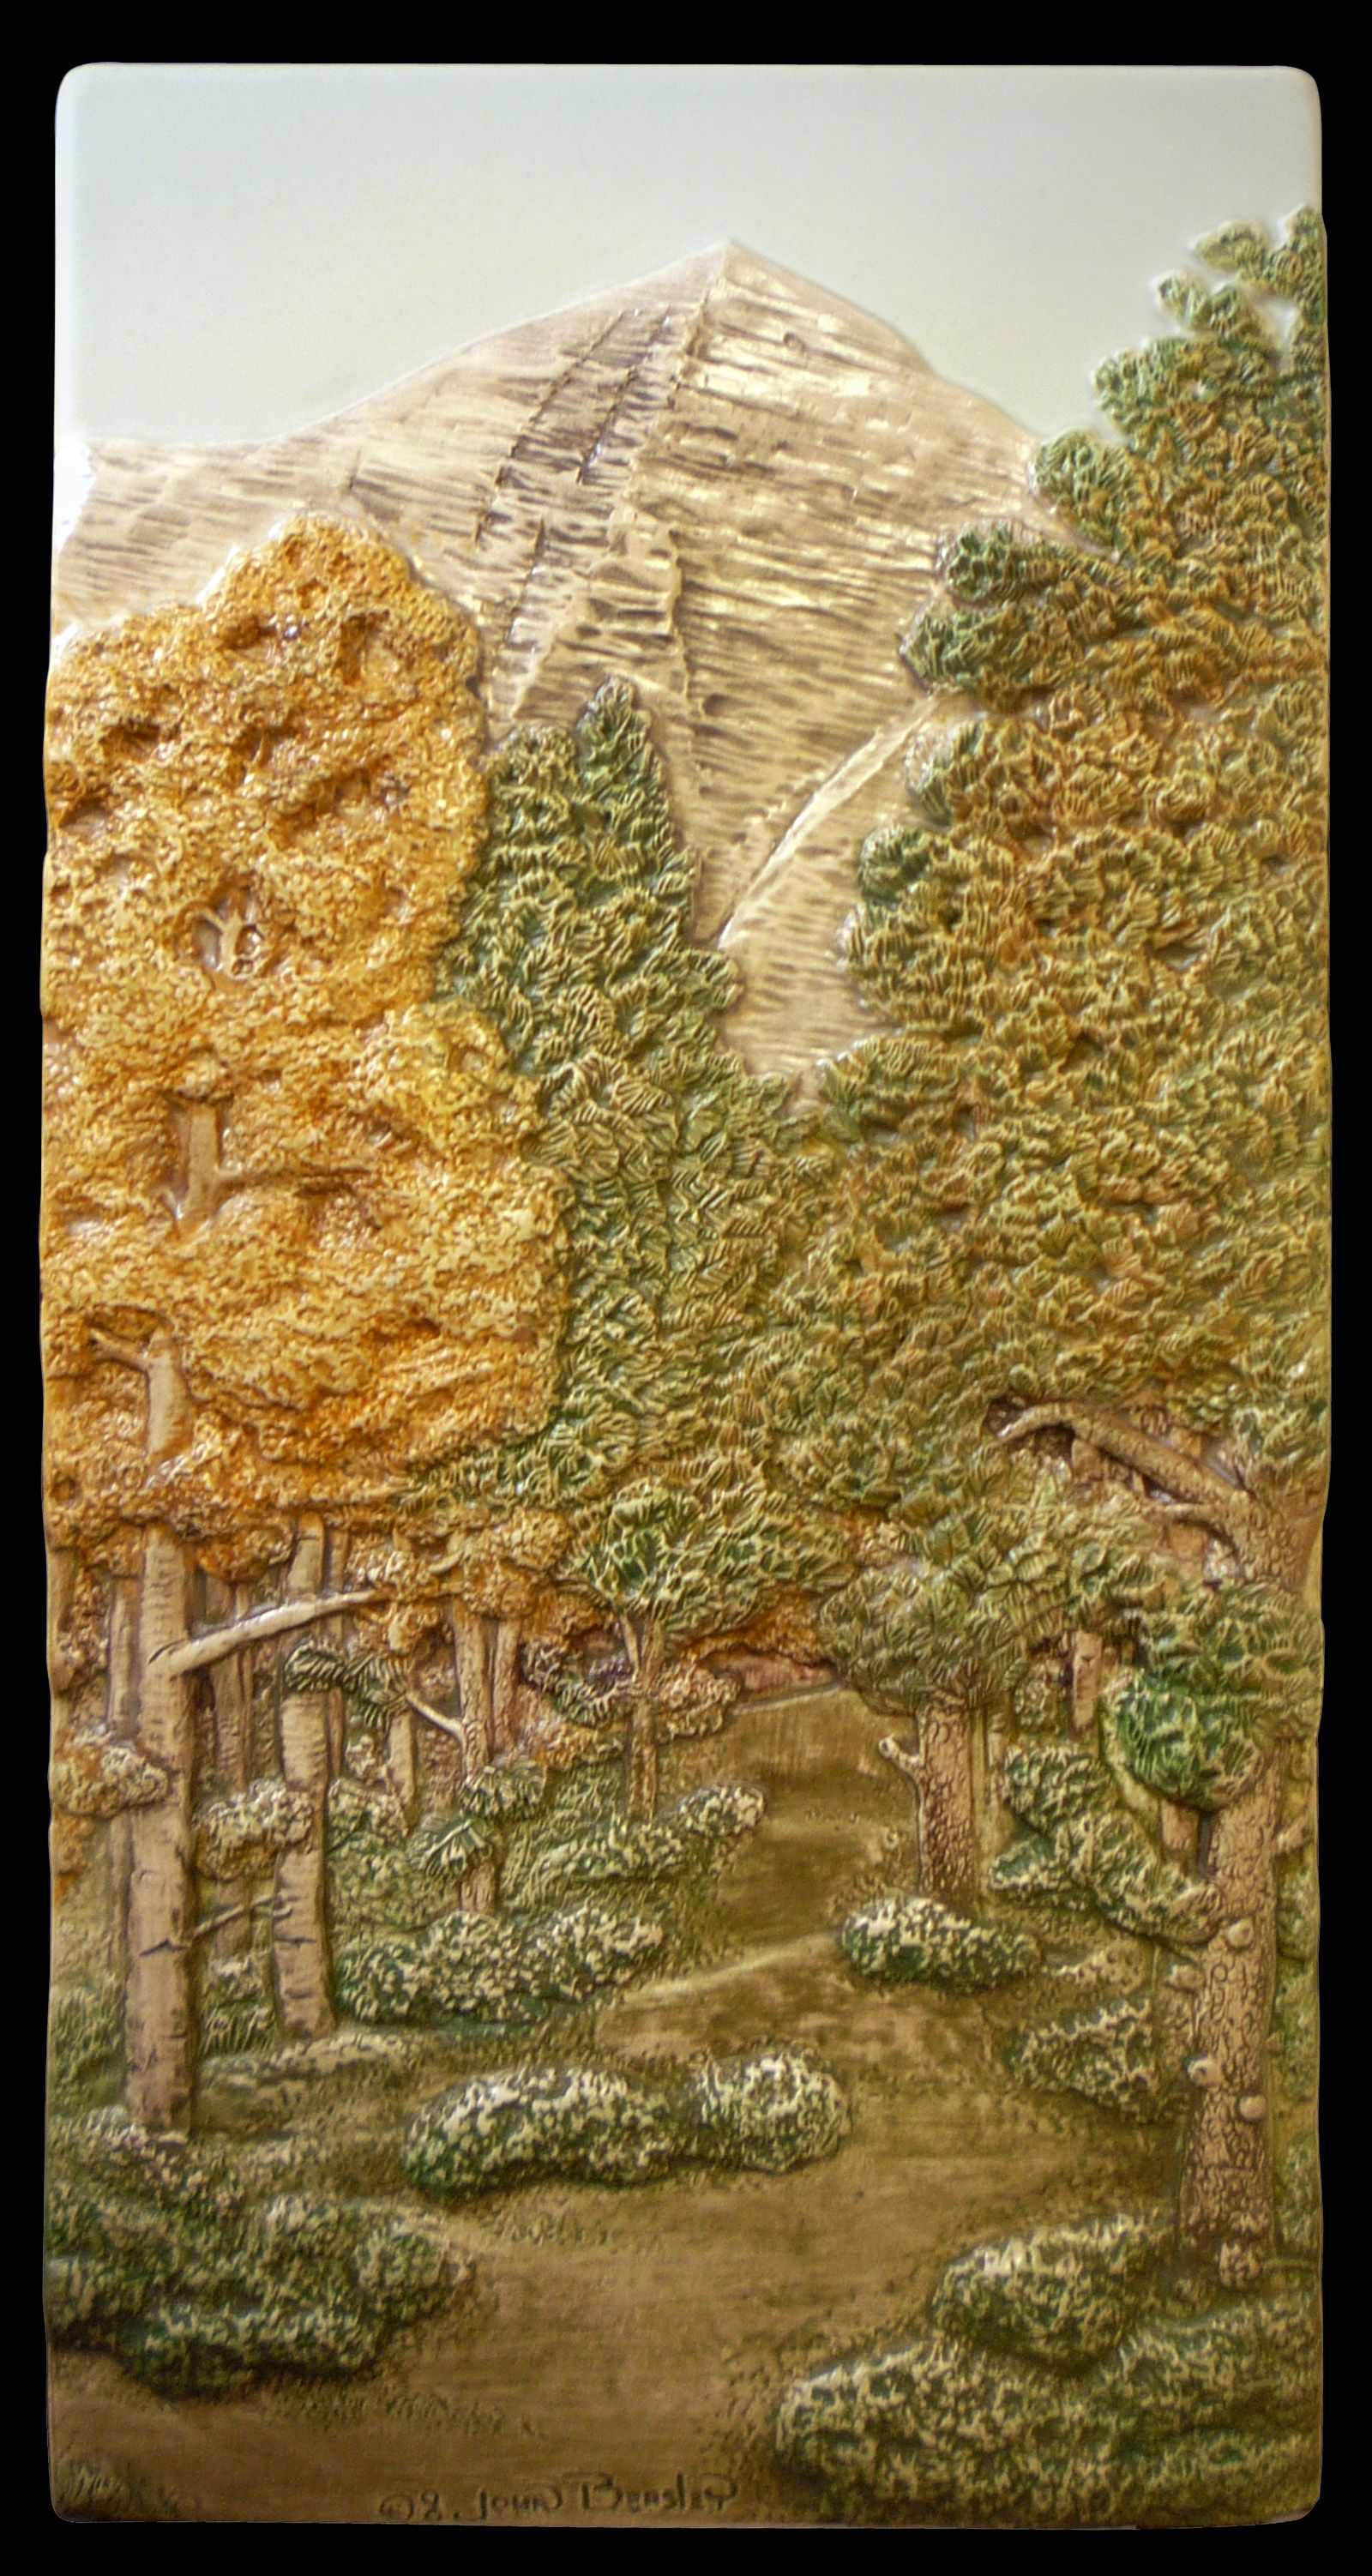 Mountain path 6 x 12 inches ceramic handglazed wall art art tile ceramic tile sculpted landscape by medicinebluffstudio mountain path 6 x 12 inches suitable for hanging framing or installing dailygadgetfo Choice Image